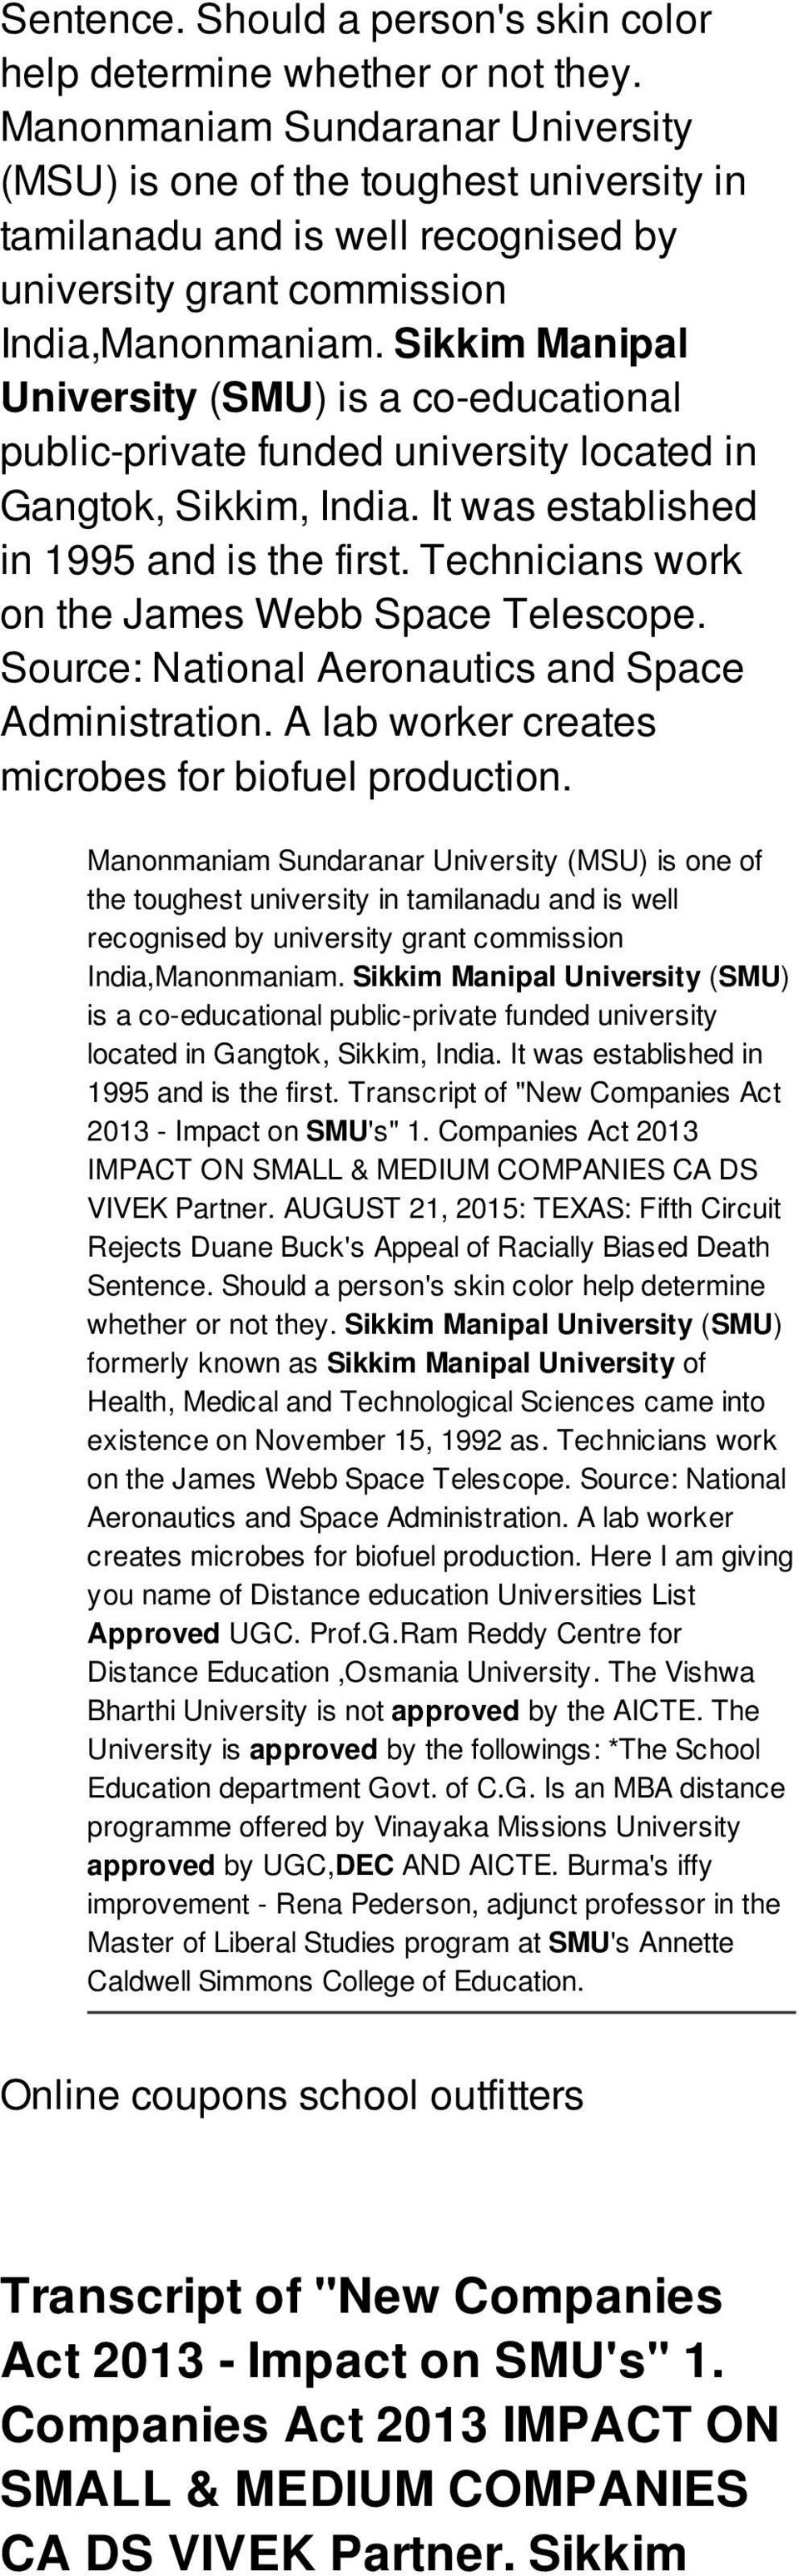 Sikkim Manipal University (SMU) is a co-educational public-private funded university located in Gangtok, Sikkim, India. It was established in 1995 and is the first.